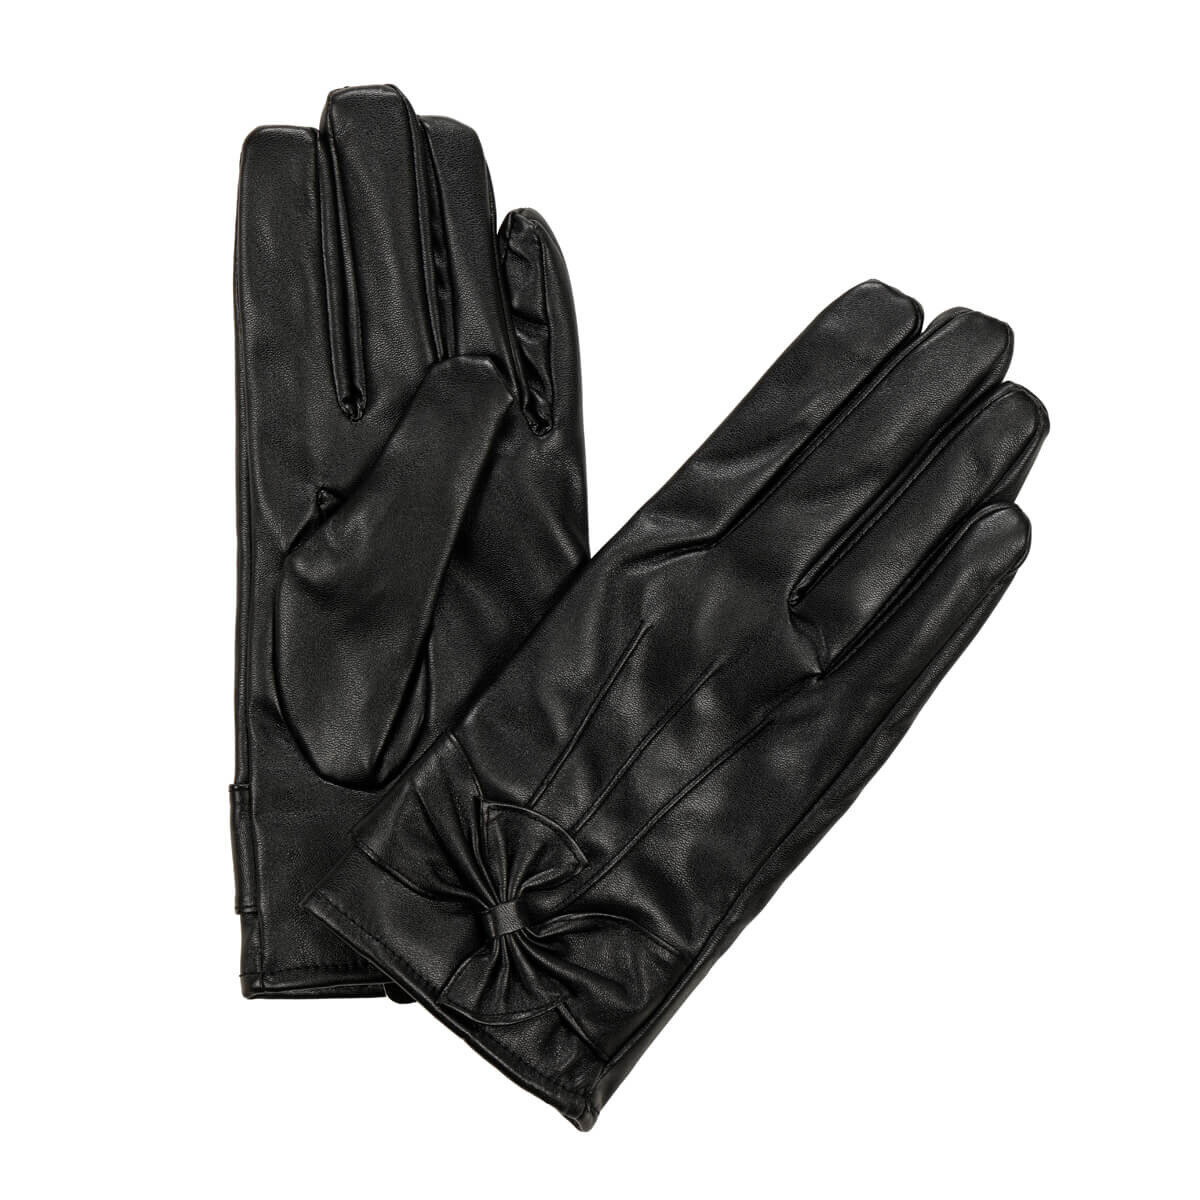 FLO BLACK RIBBONS GLOVES Black Women 'S Gloves Miss F